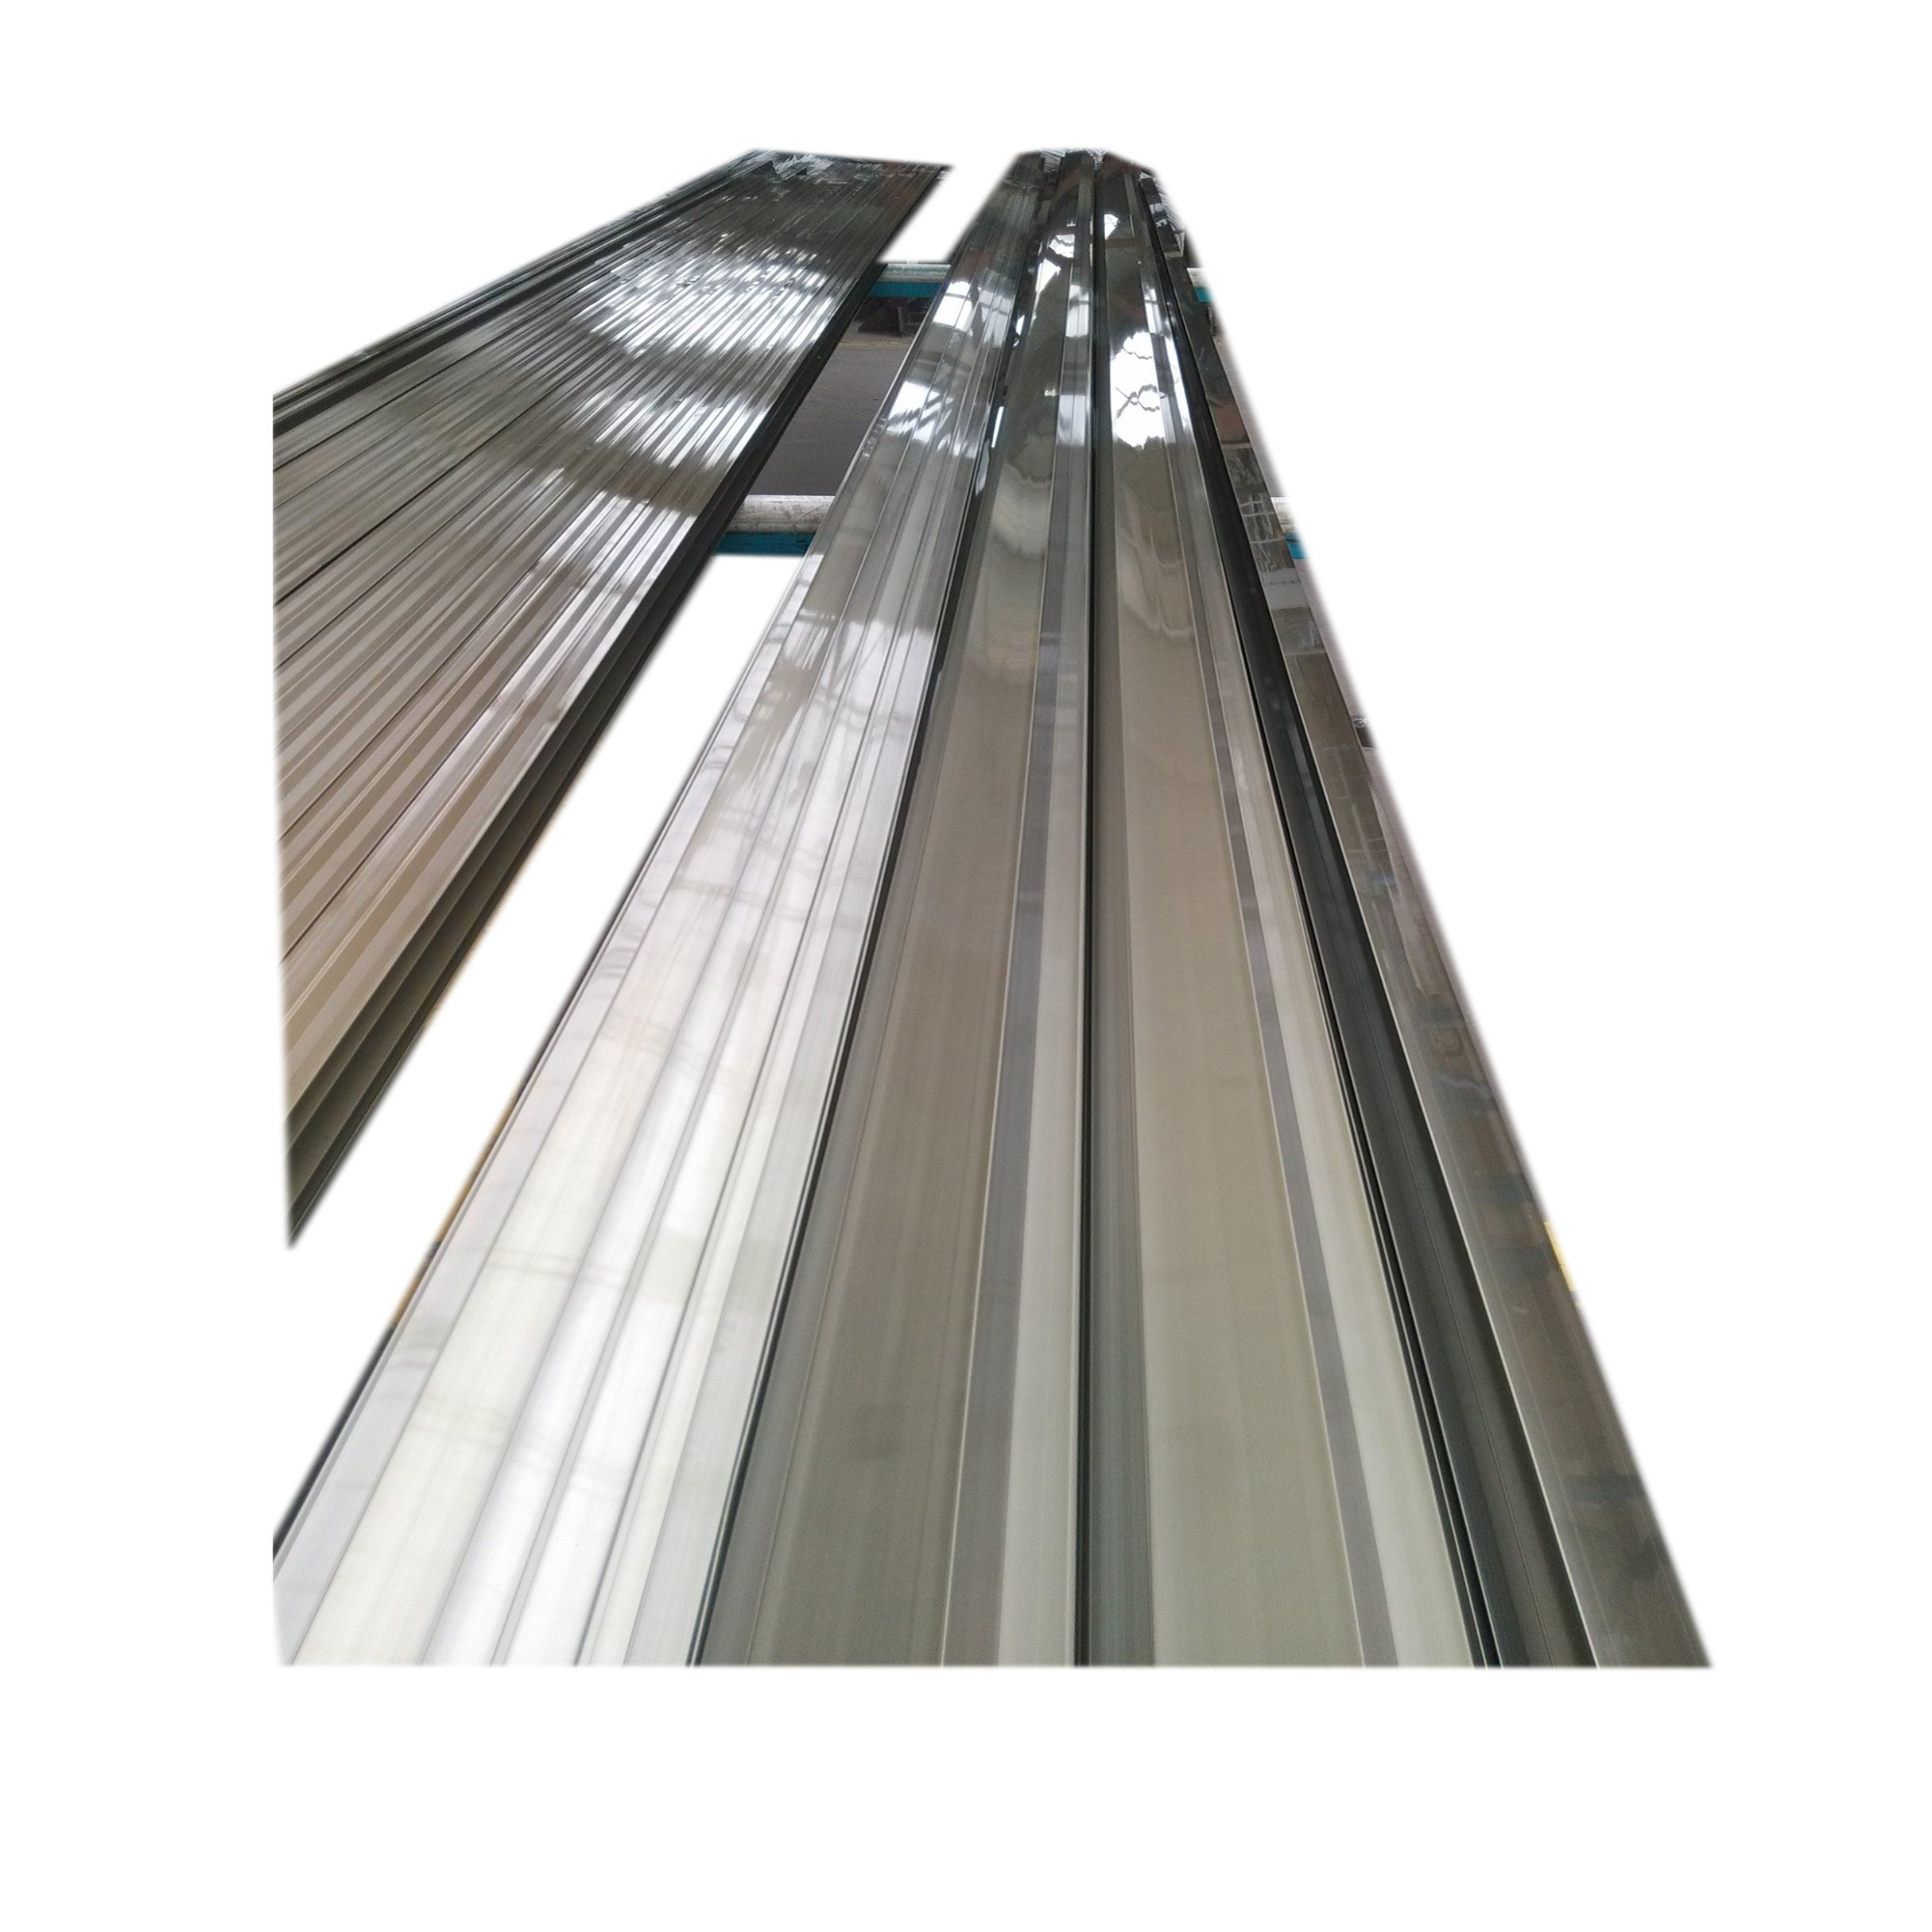 Ecectrophoretic China Sliding Casement Open Aluminium Extrusion Profile for Window Door Industrial